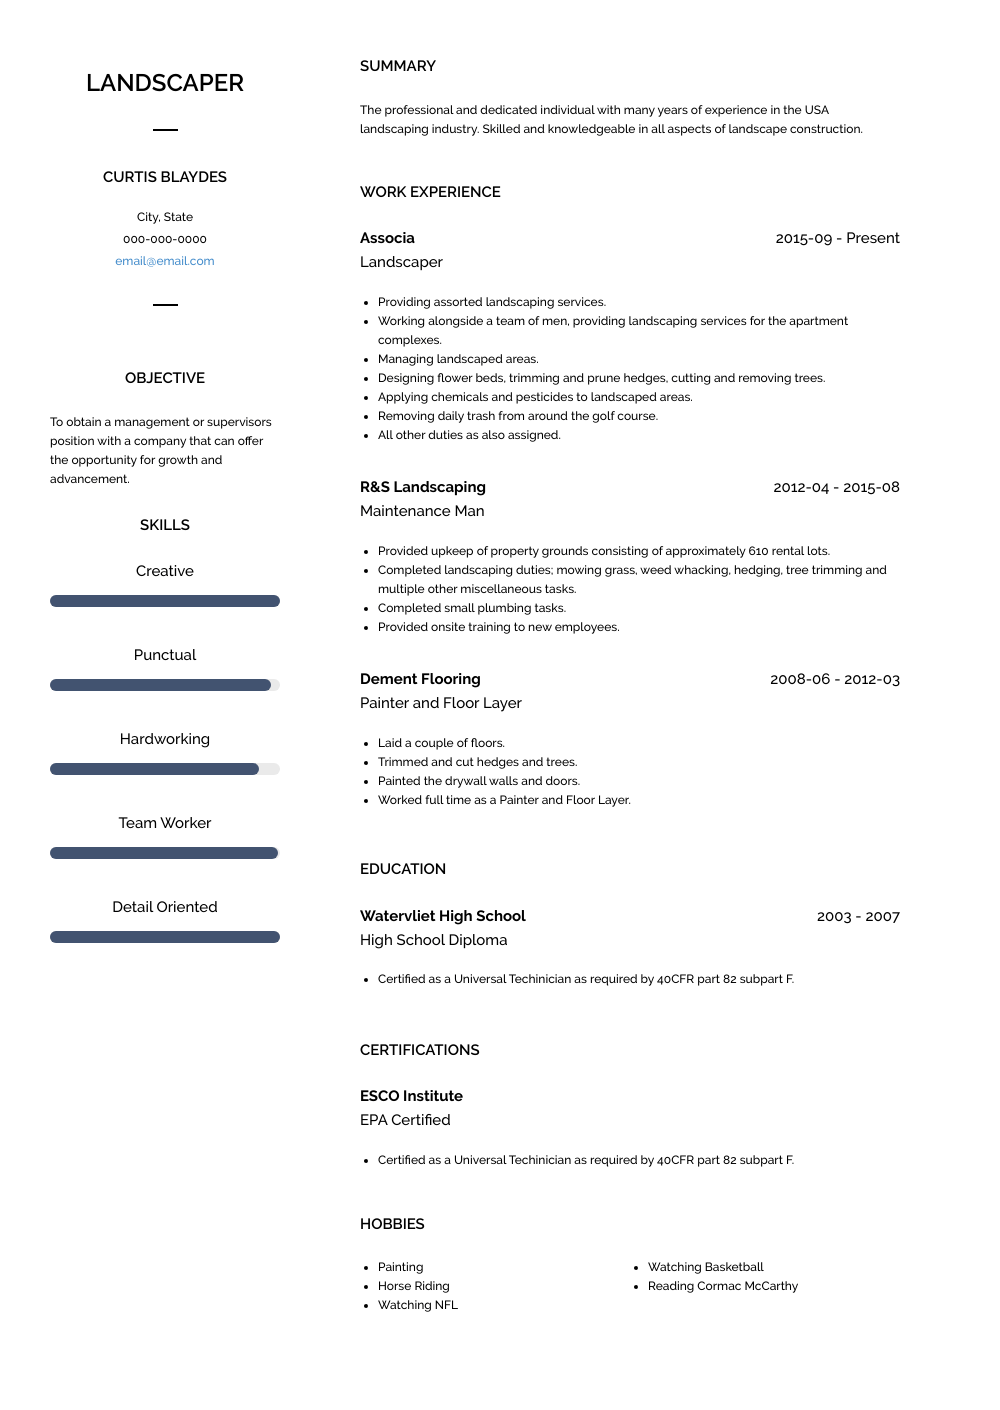 Landscaping Resume Samples And Templates Visualcv